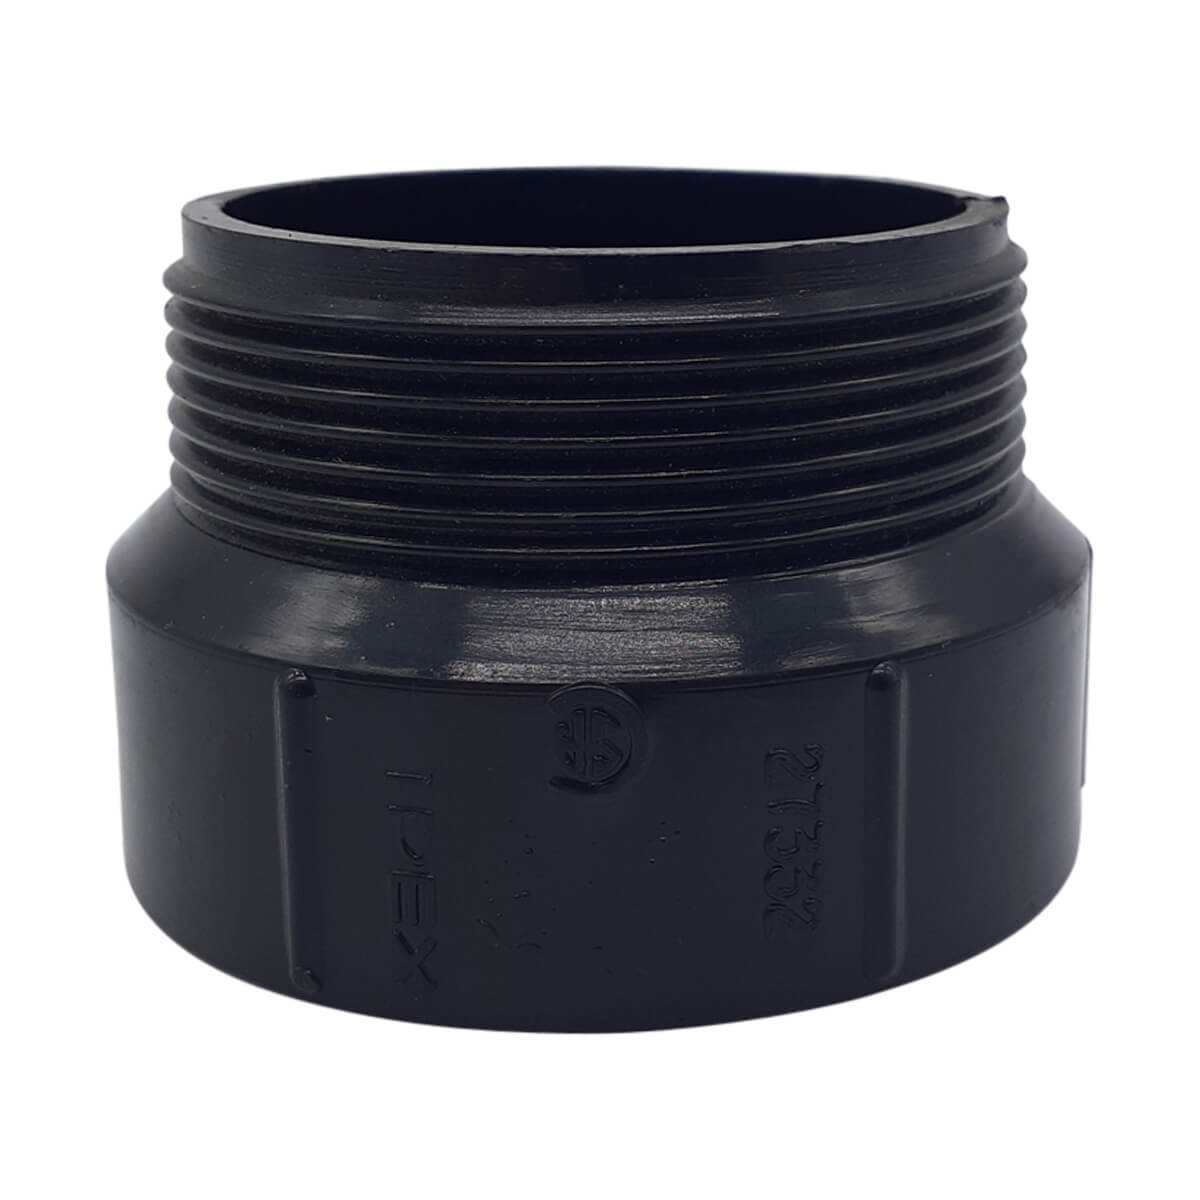 ABS-DWV Male Adapter - Hub x MPT - 2-in